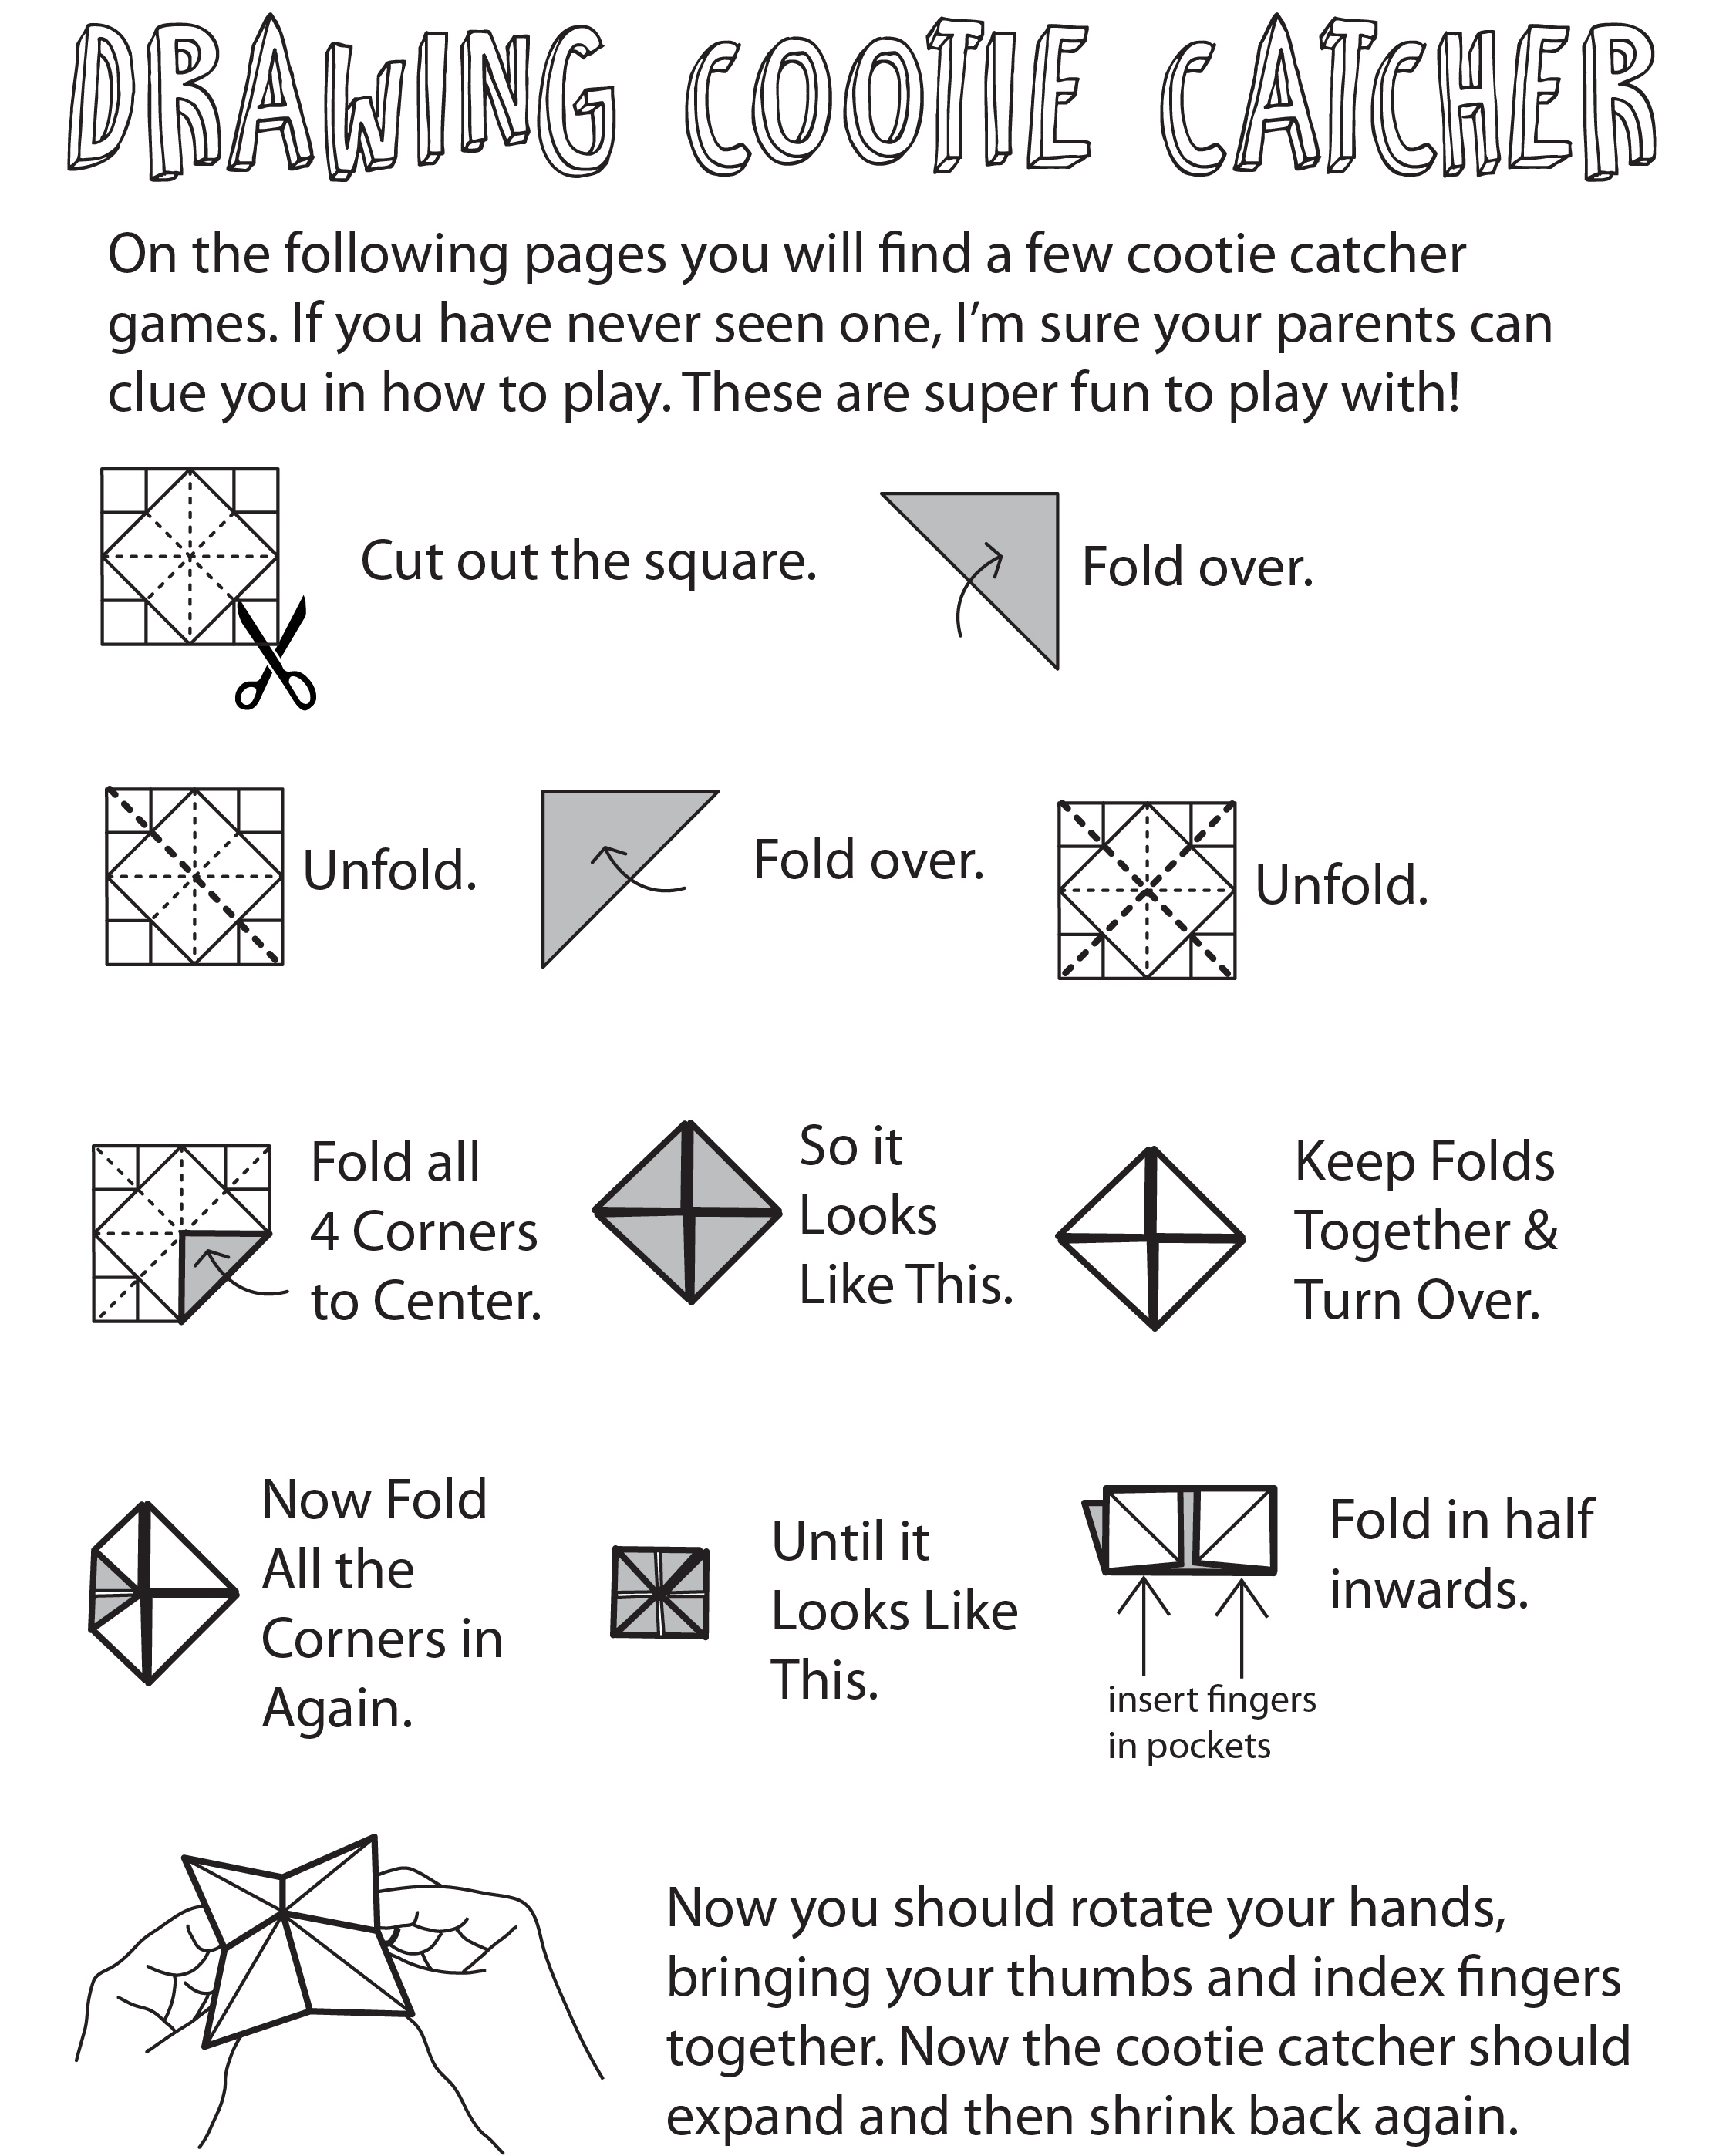 Instructions for Folding a Cootie Catcher - Easy Steps